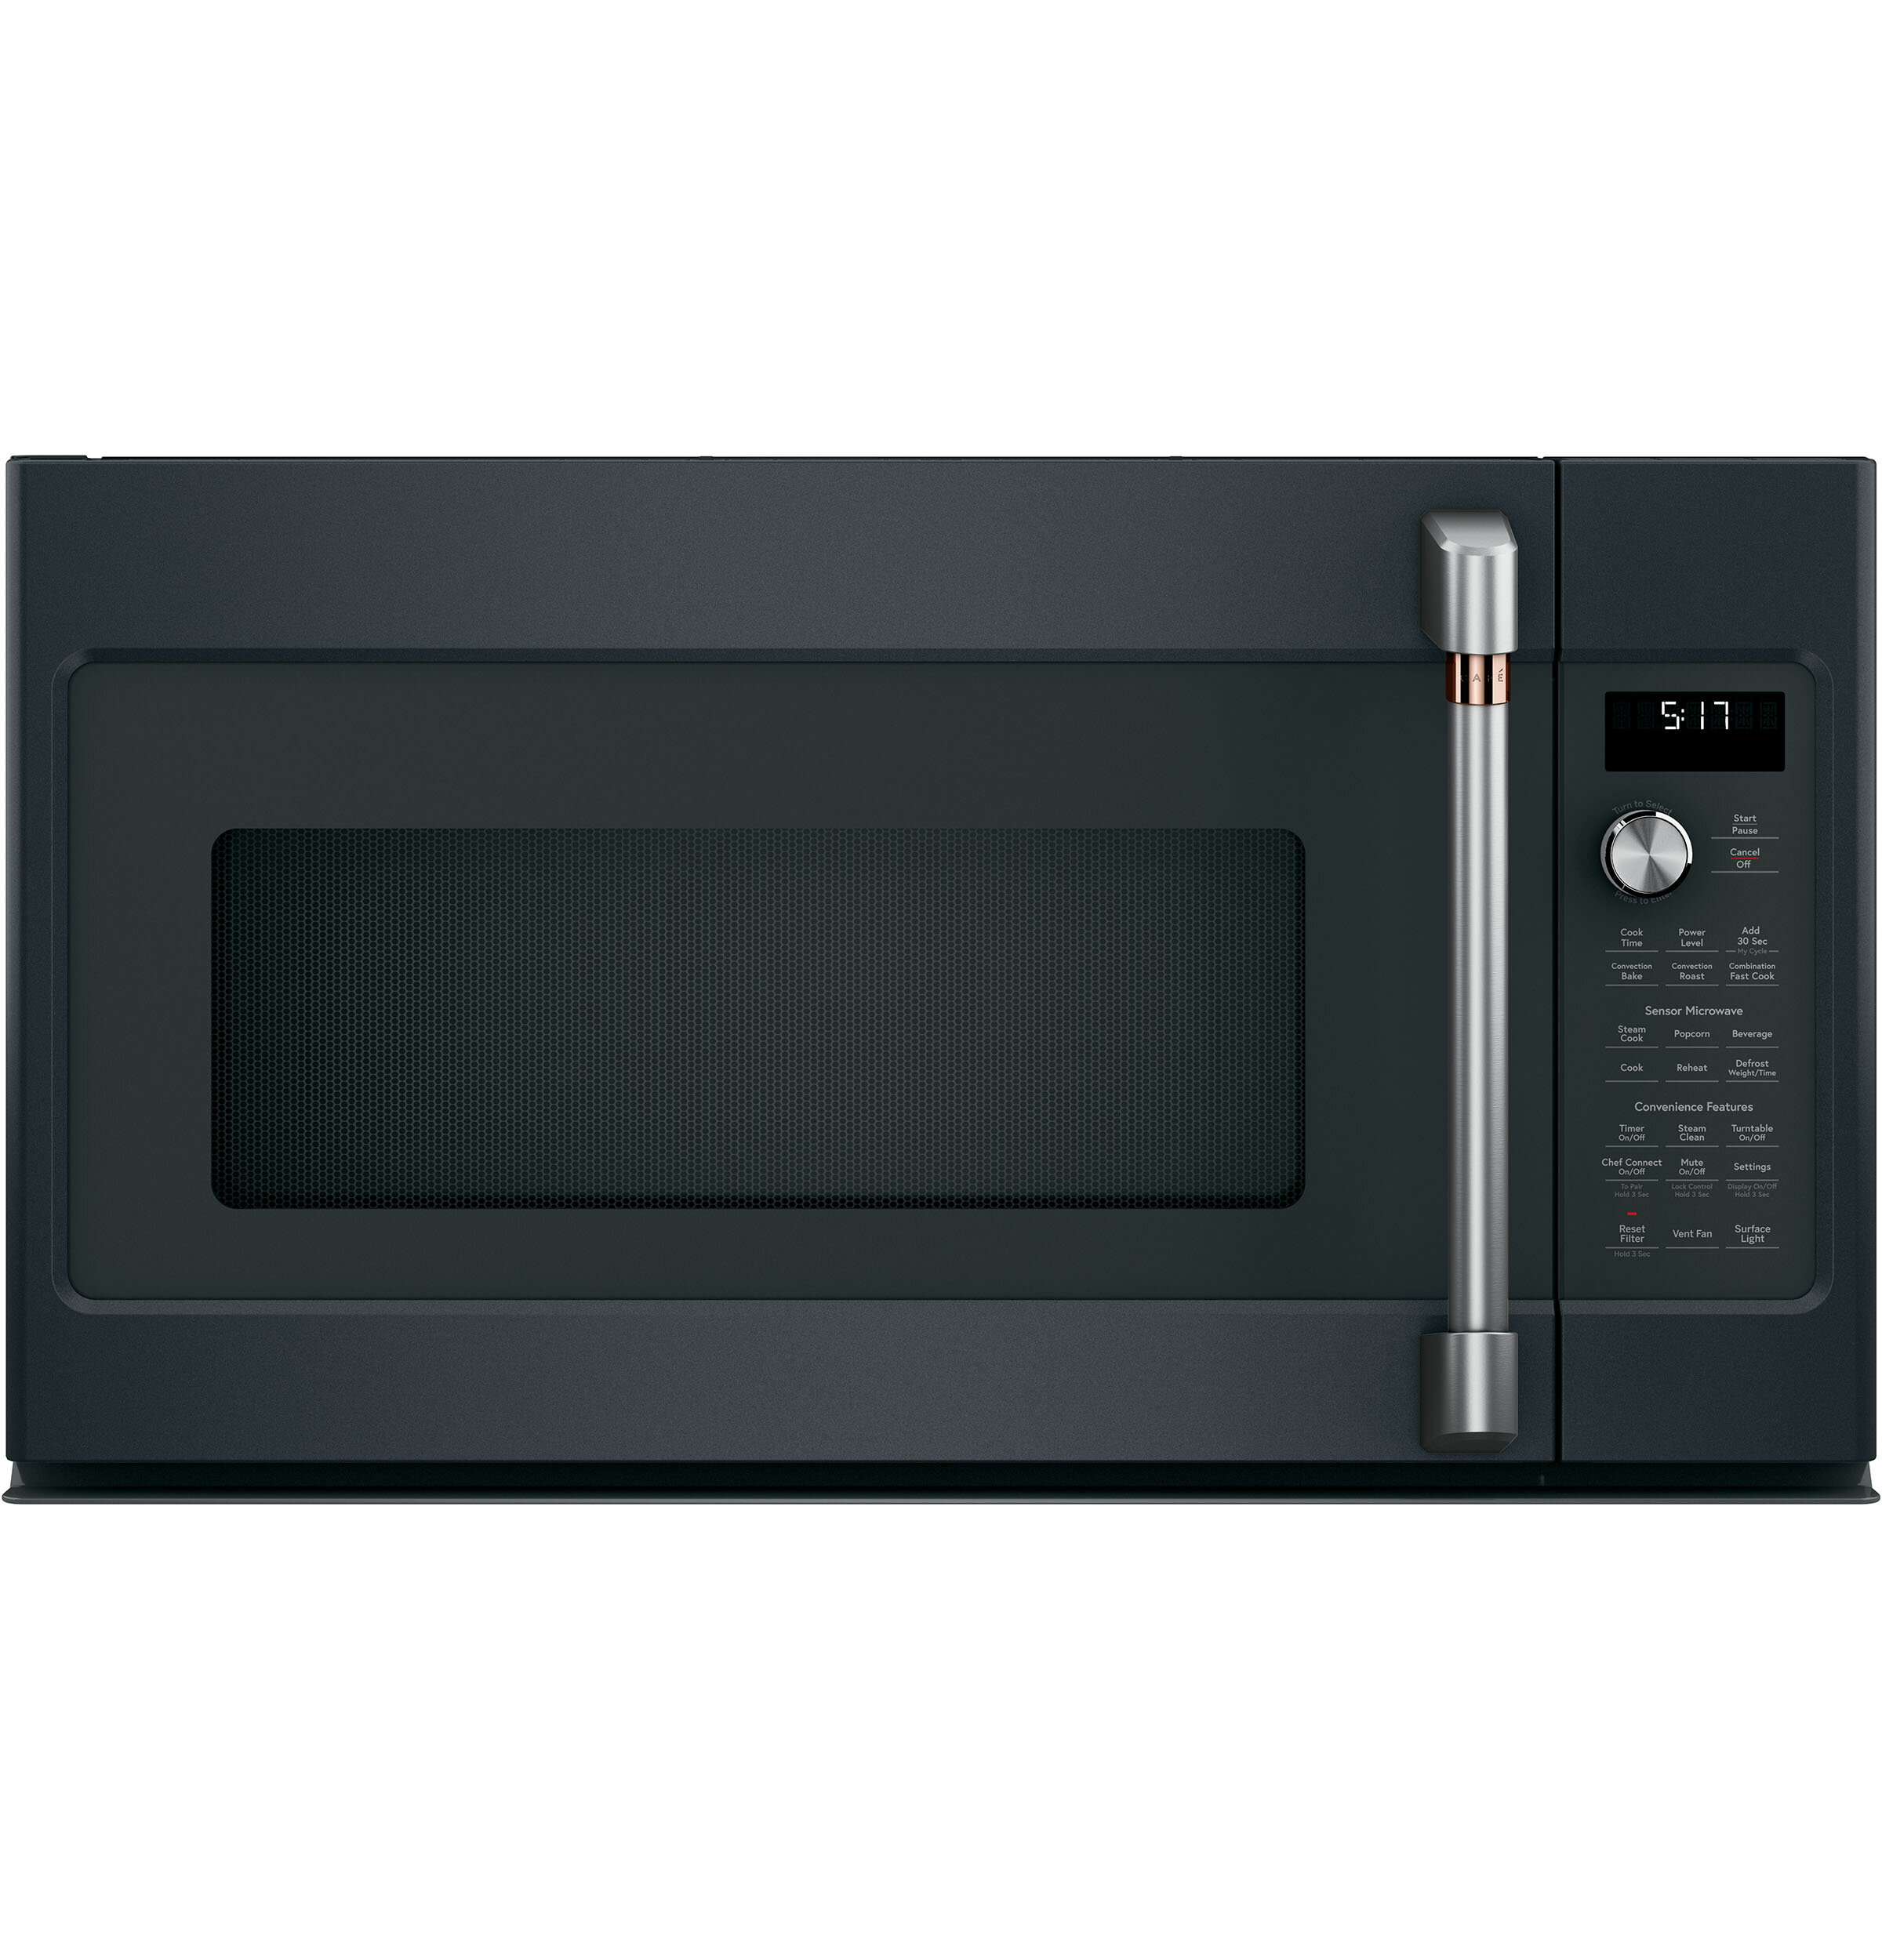 30 1 7 Cu Ft Over The Range Convection Microwave With Sensor Cooking